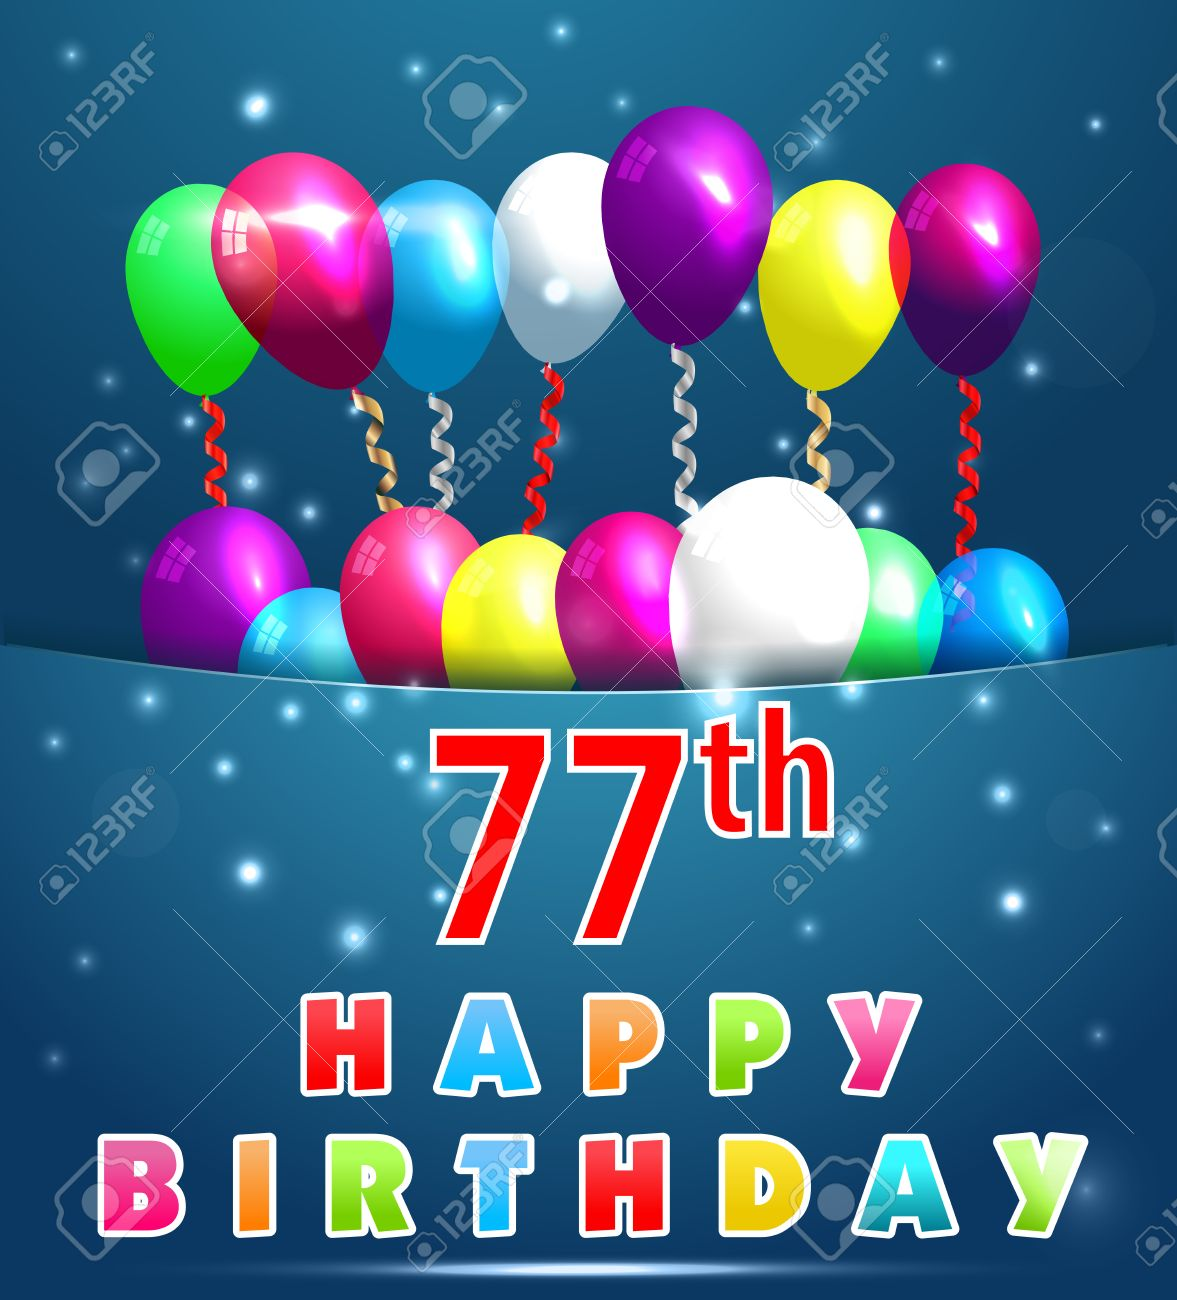 77 Year Happy Birthday Card With Balloons And Ribbons 77th Stock Vector